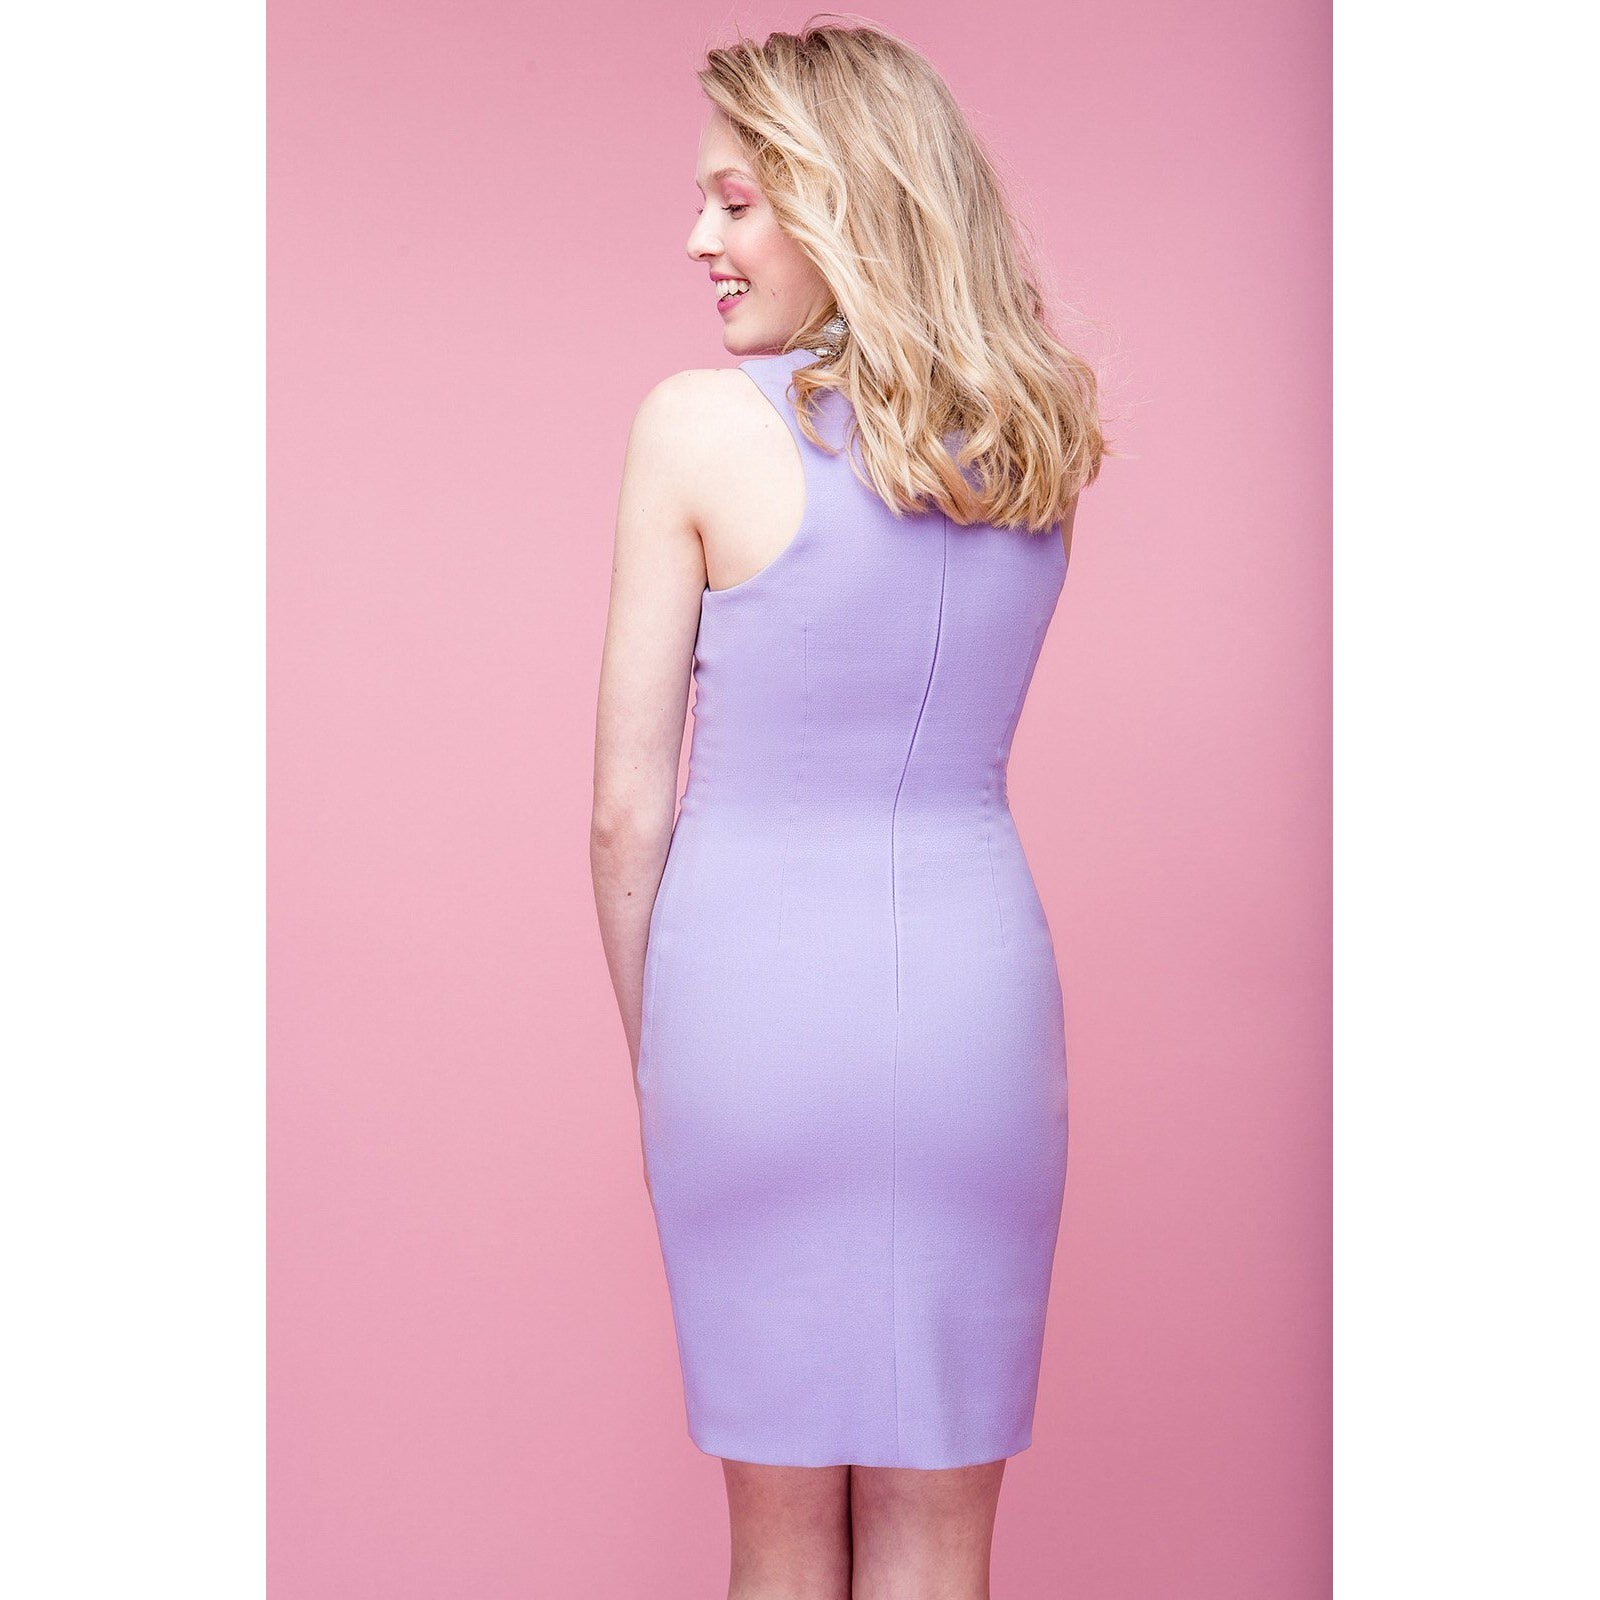 678c9244f6d Pink Short Bodycon Dress Friday Is For Love-OVER THE SEA-HOUSE of BOTTA